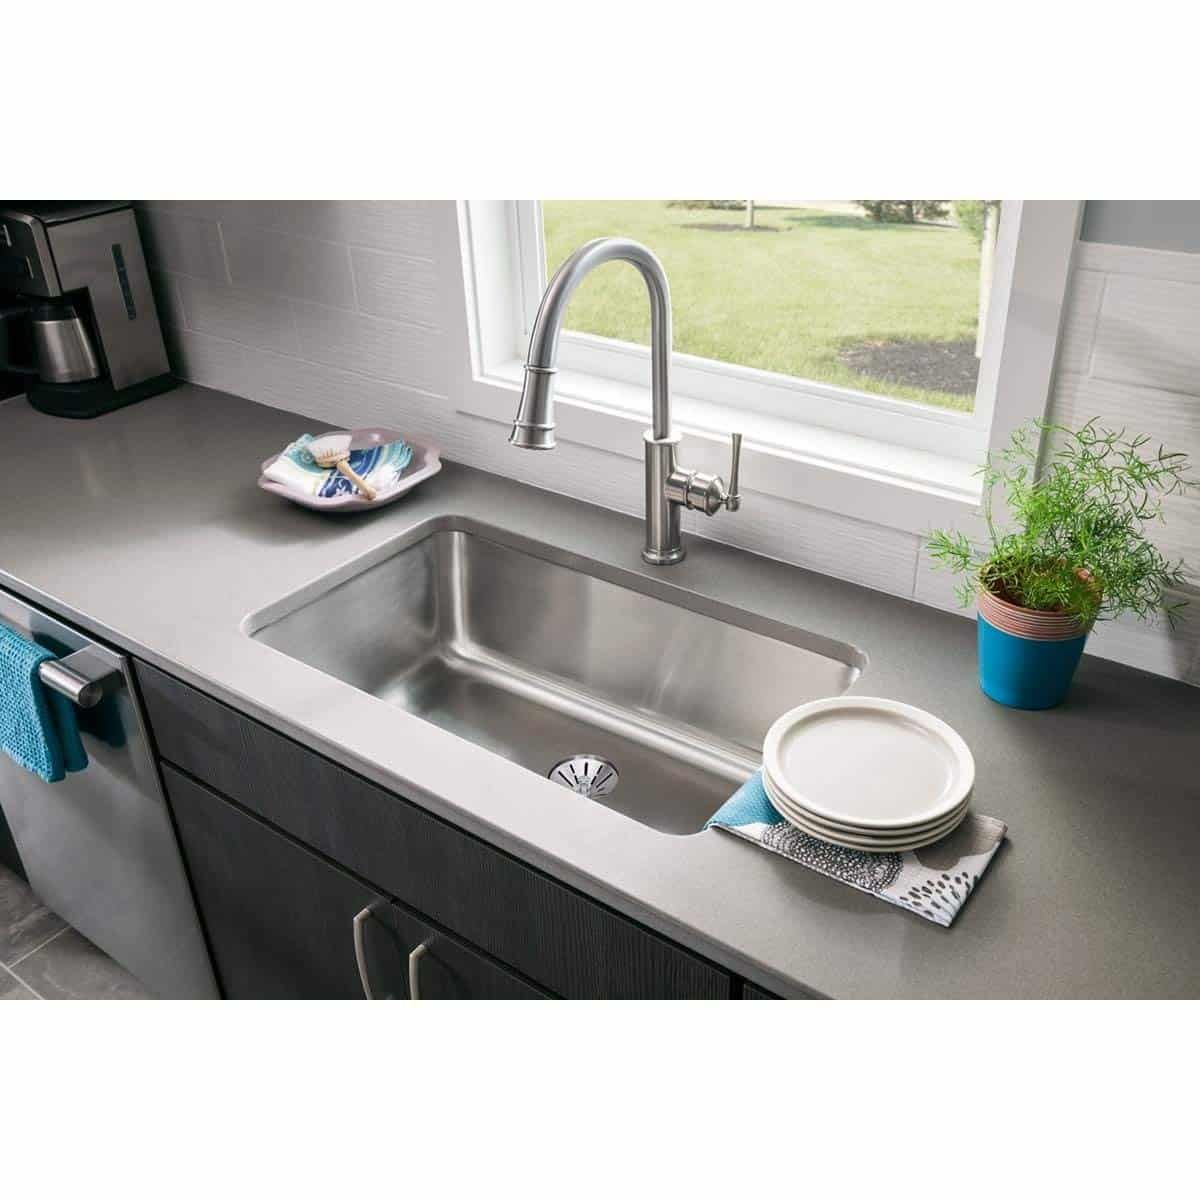 Elegant Picture Of Ceramic Kitchen Sinks Pros And Cons Top 10 Best Single Bowl In 2018 Reviews Ers